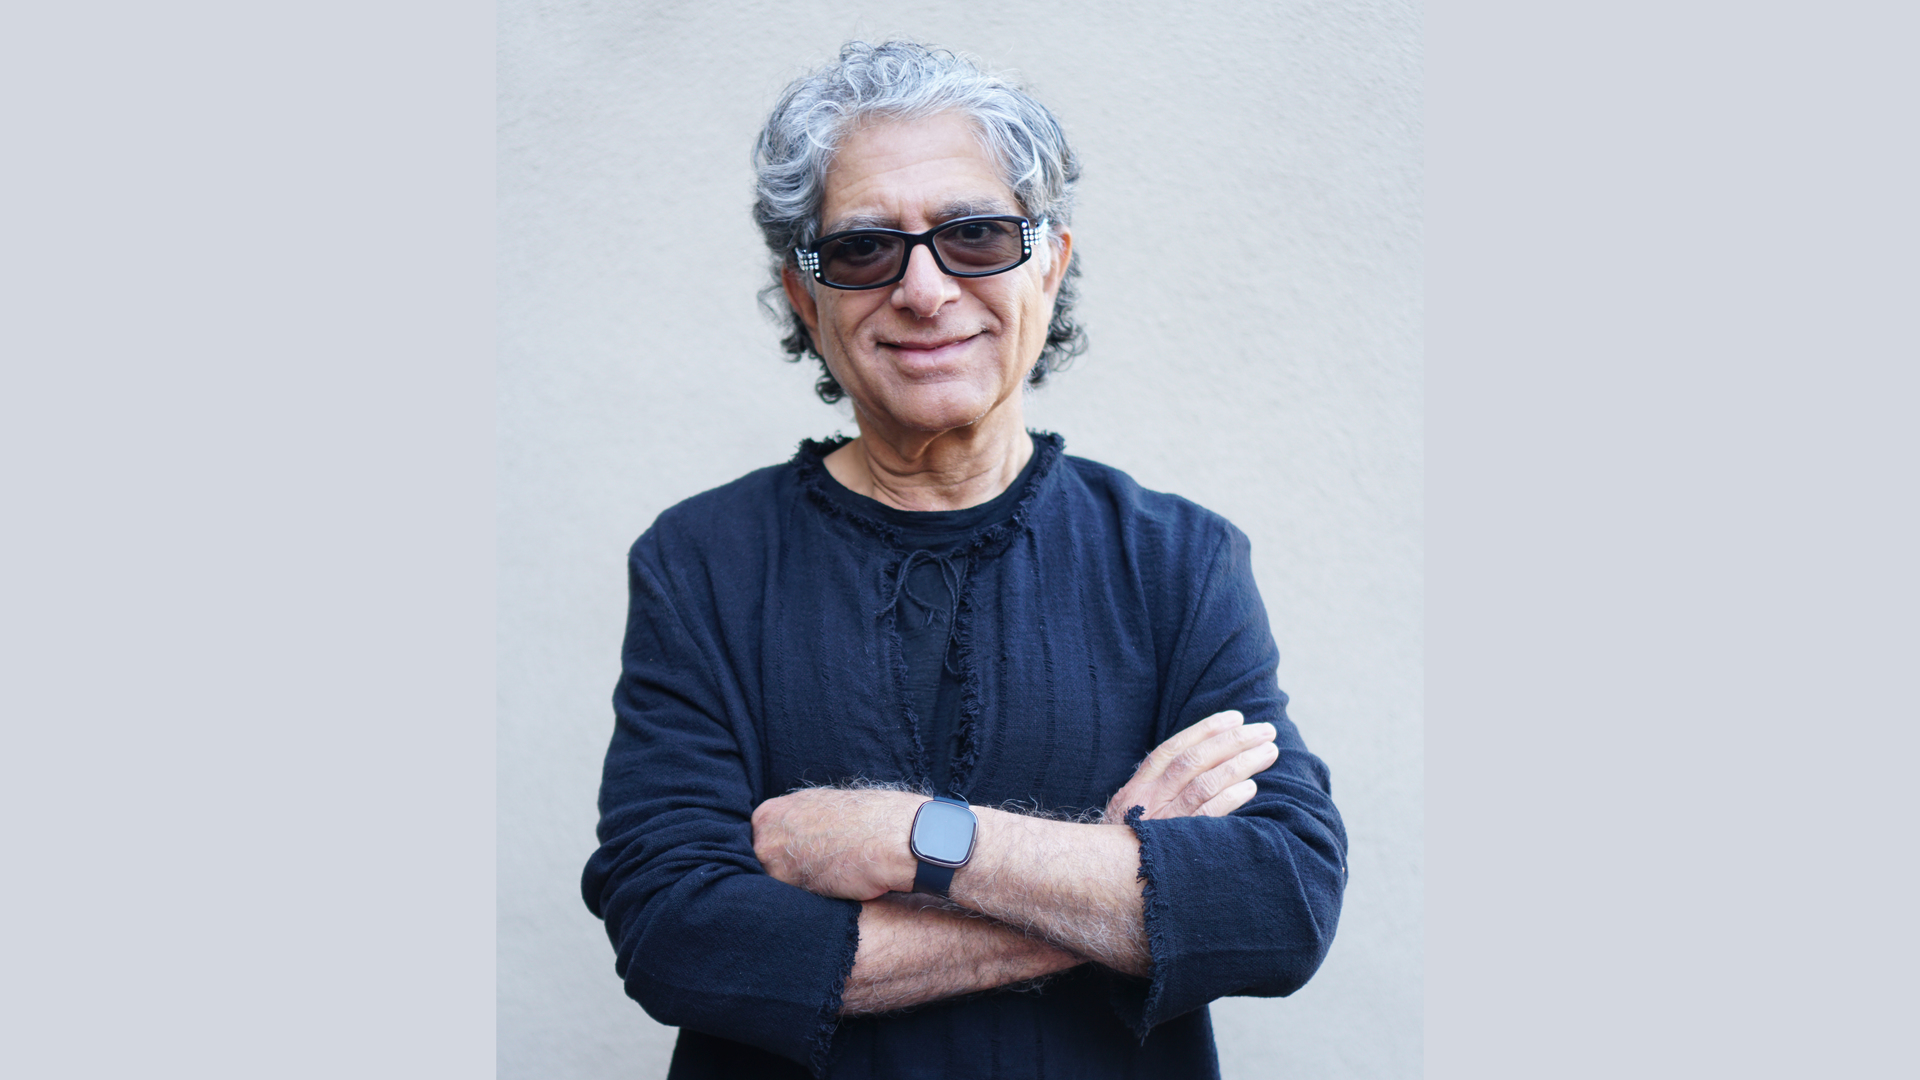 Mindfulness sessions from Deepak Chopra are coming to Fitbit Premium